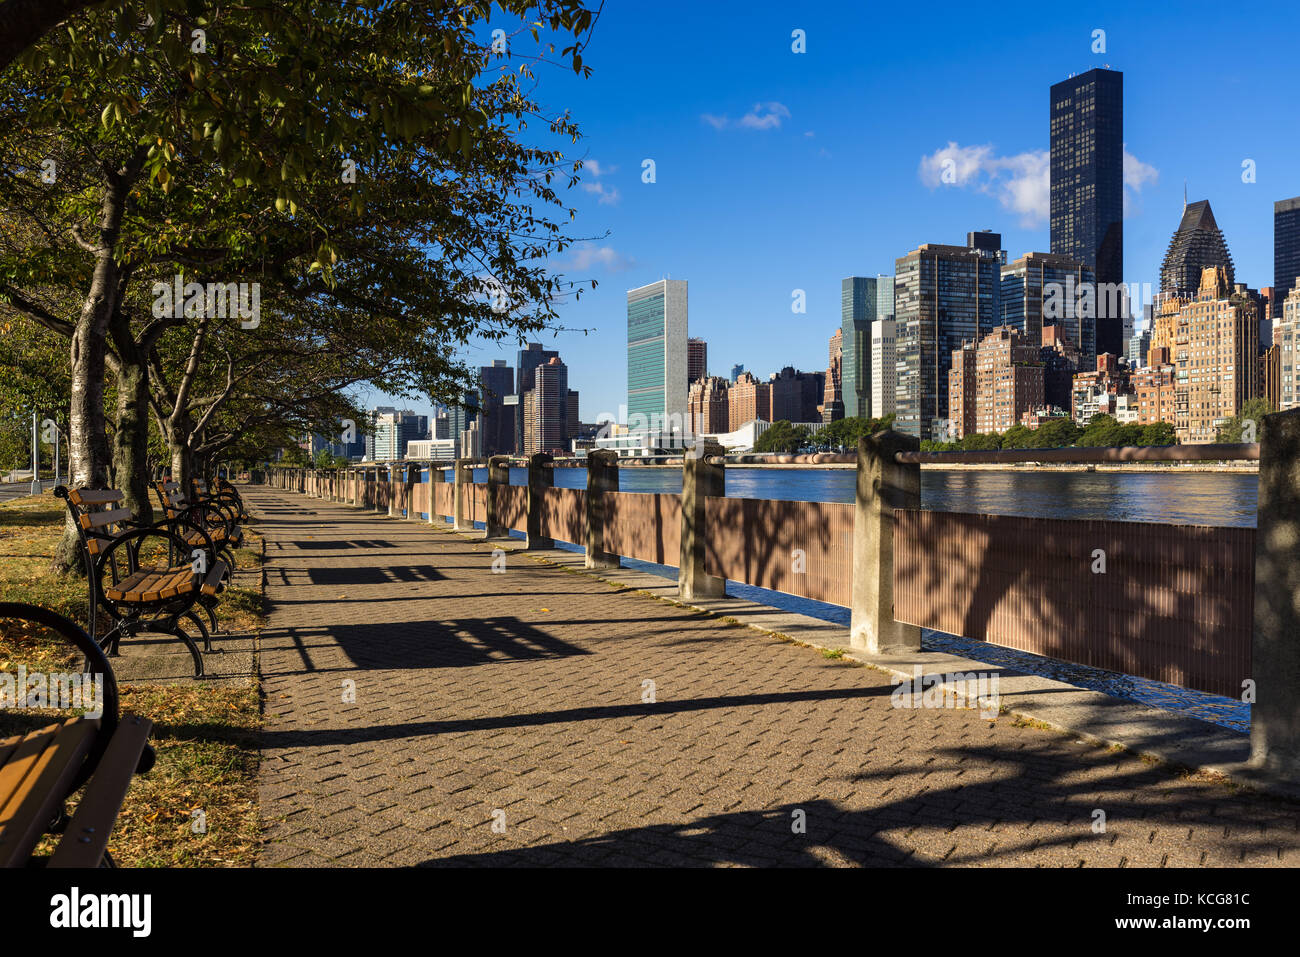 Morning view of Manhattan Midtown East skyscrapers from Roosevelt Island with the East River. New York City - Stock Image